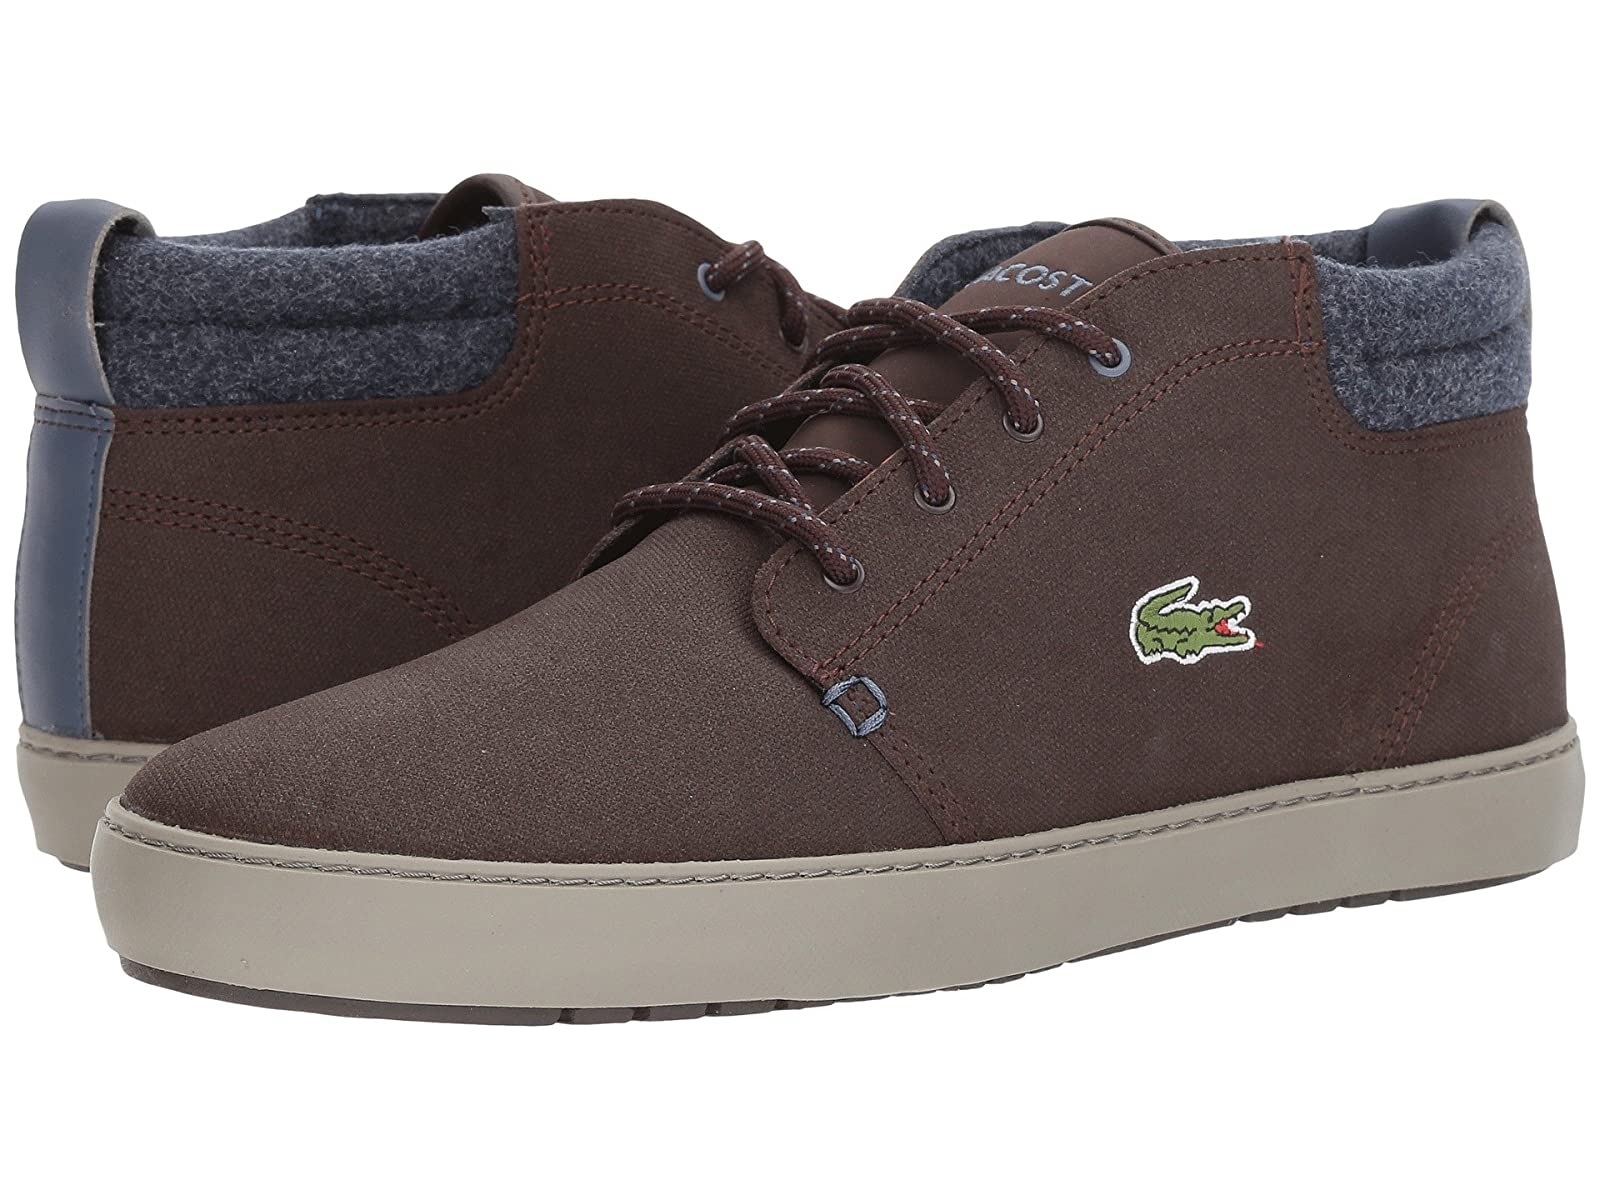 Lacoste Ampthill Terra 417 1 CamAtmospheric grades have affordable shoes